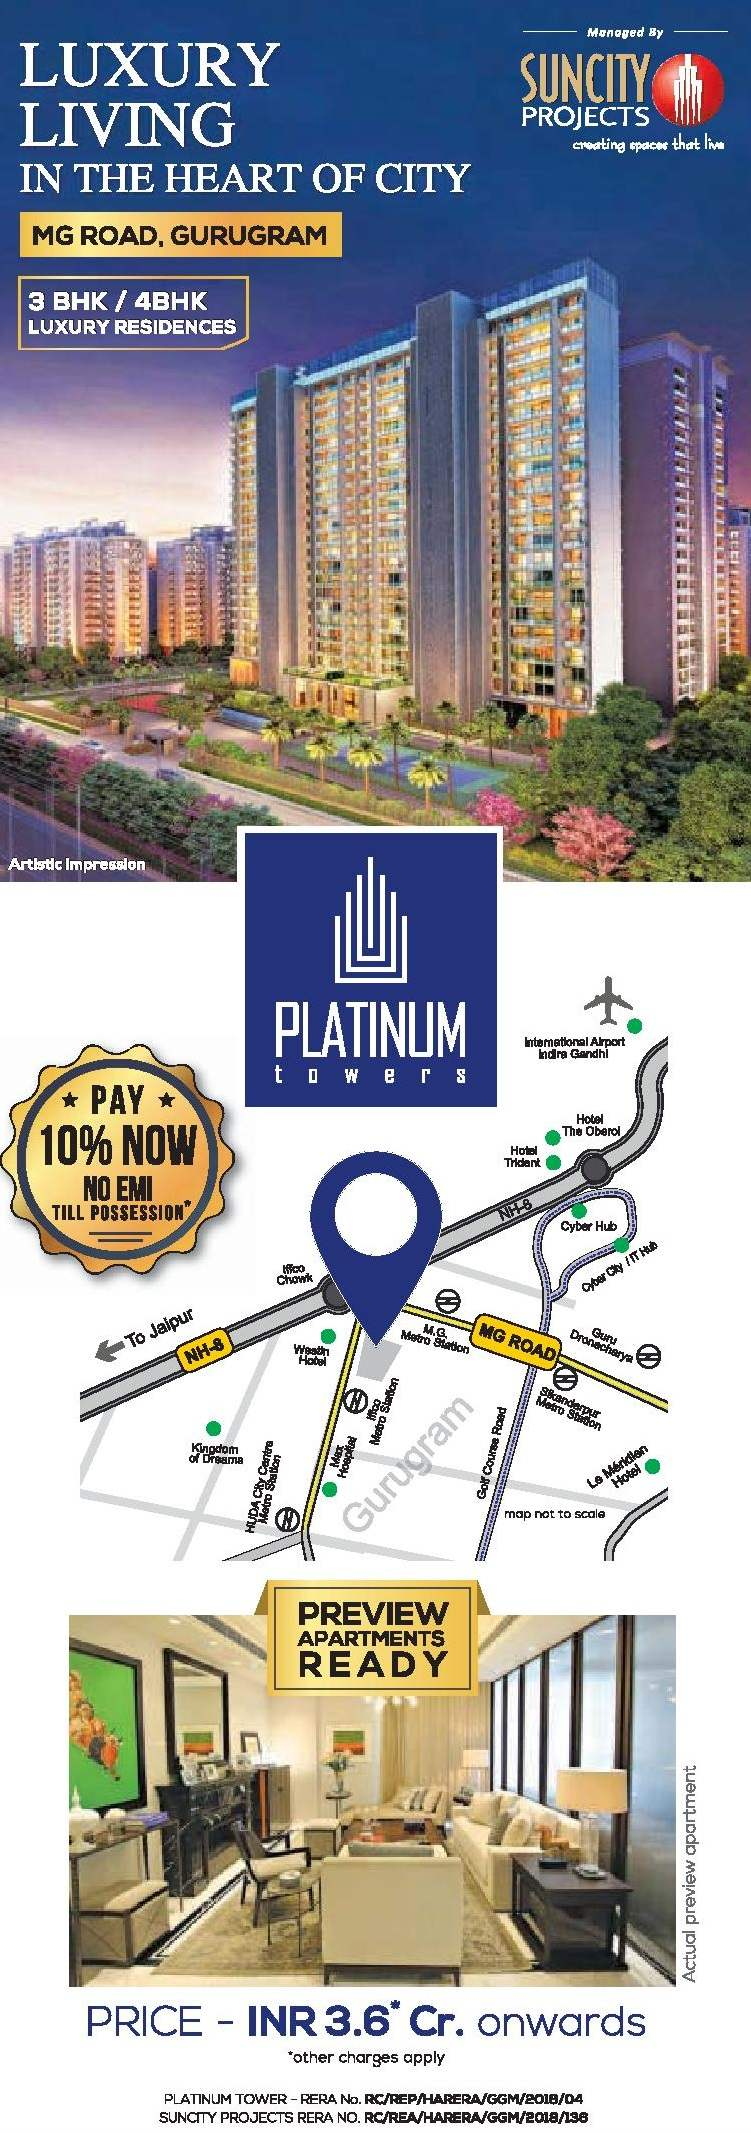 Pay 10 now no EMI till possession at Suncity Platinum Towers in MG Road Gurgaon